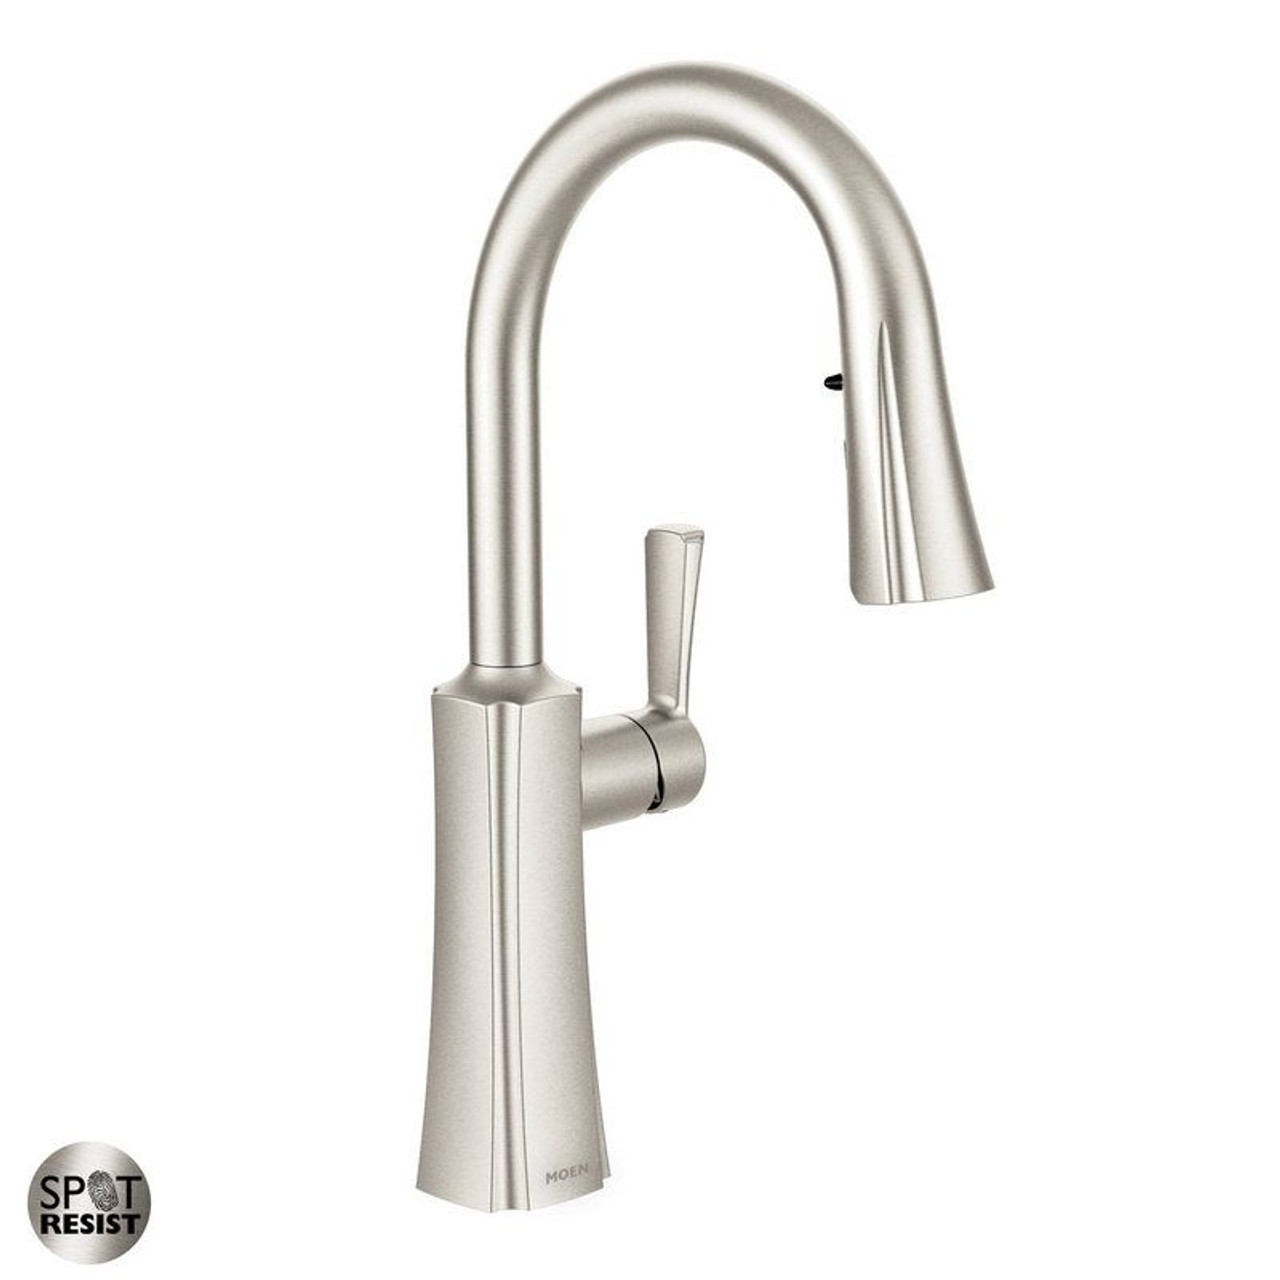 Moen S72608SRS Etch Single Pull-Down Kitchen Faucet